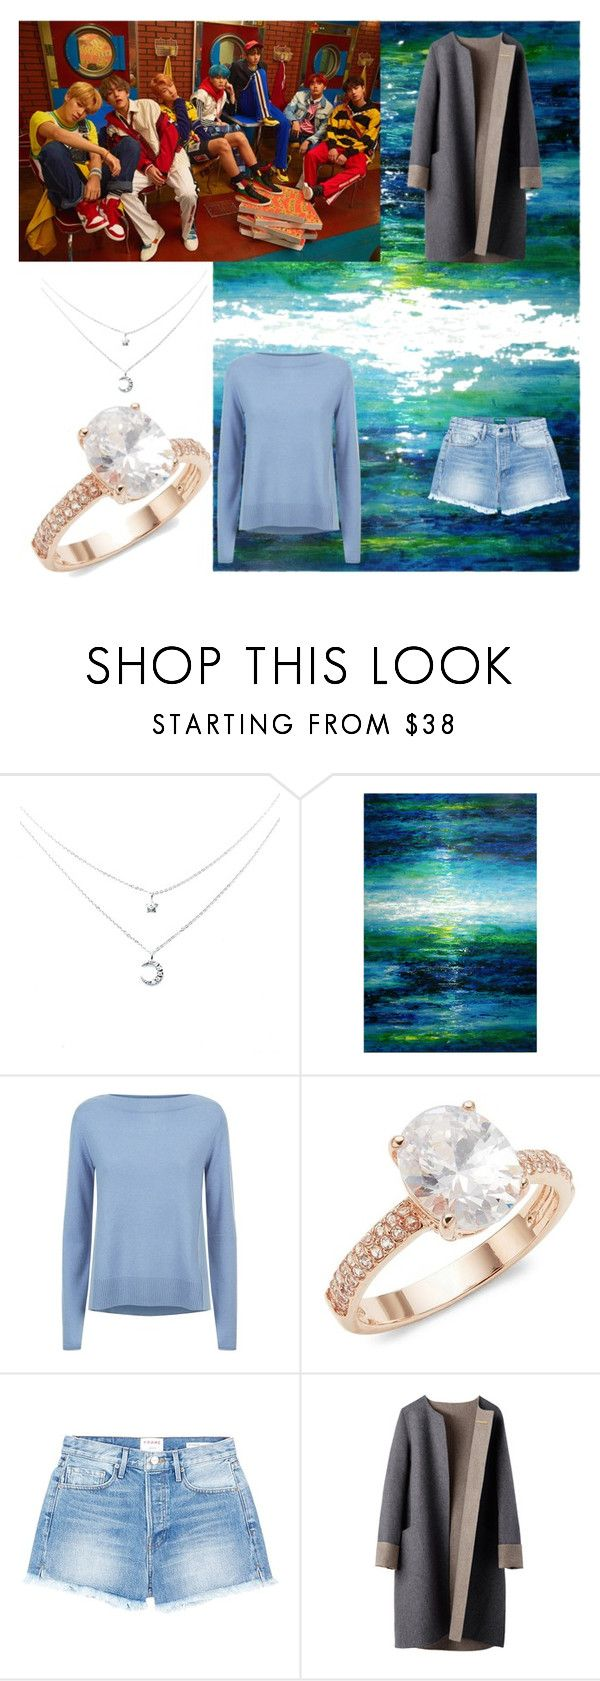 """""""Sea by bts"""" by max1310 ❤ liked on Polyvore featuring Leftbank Art, Escada Sport, Saks Fifth Avenue and Frame"""